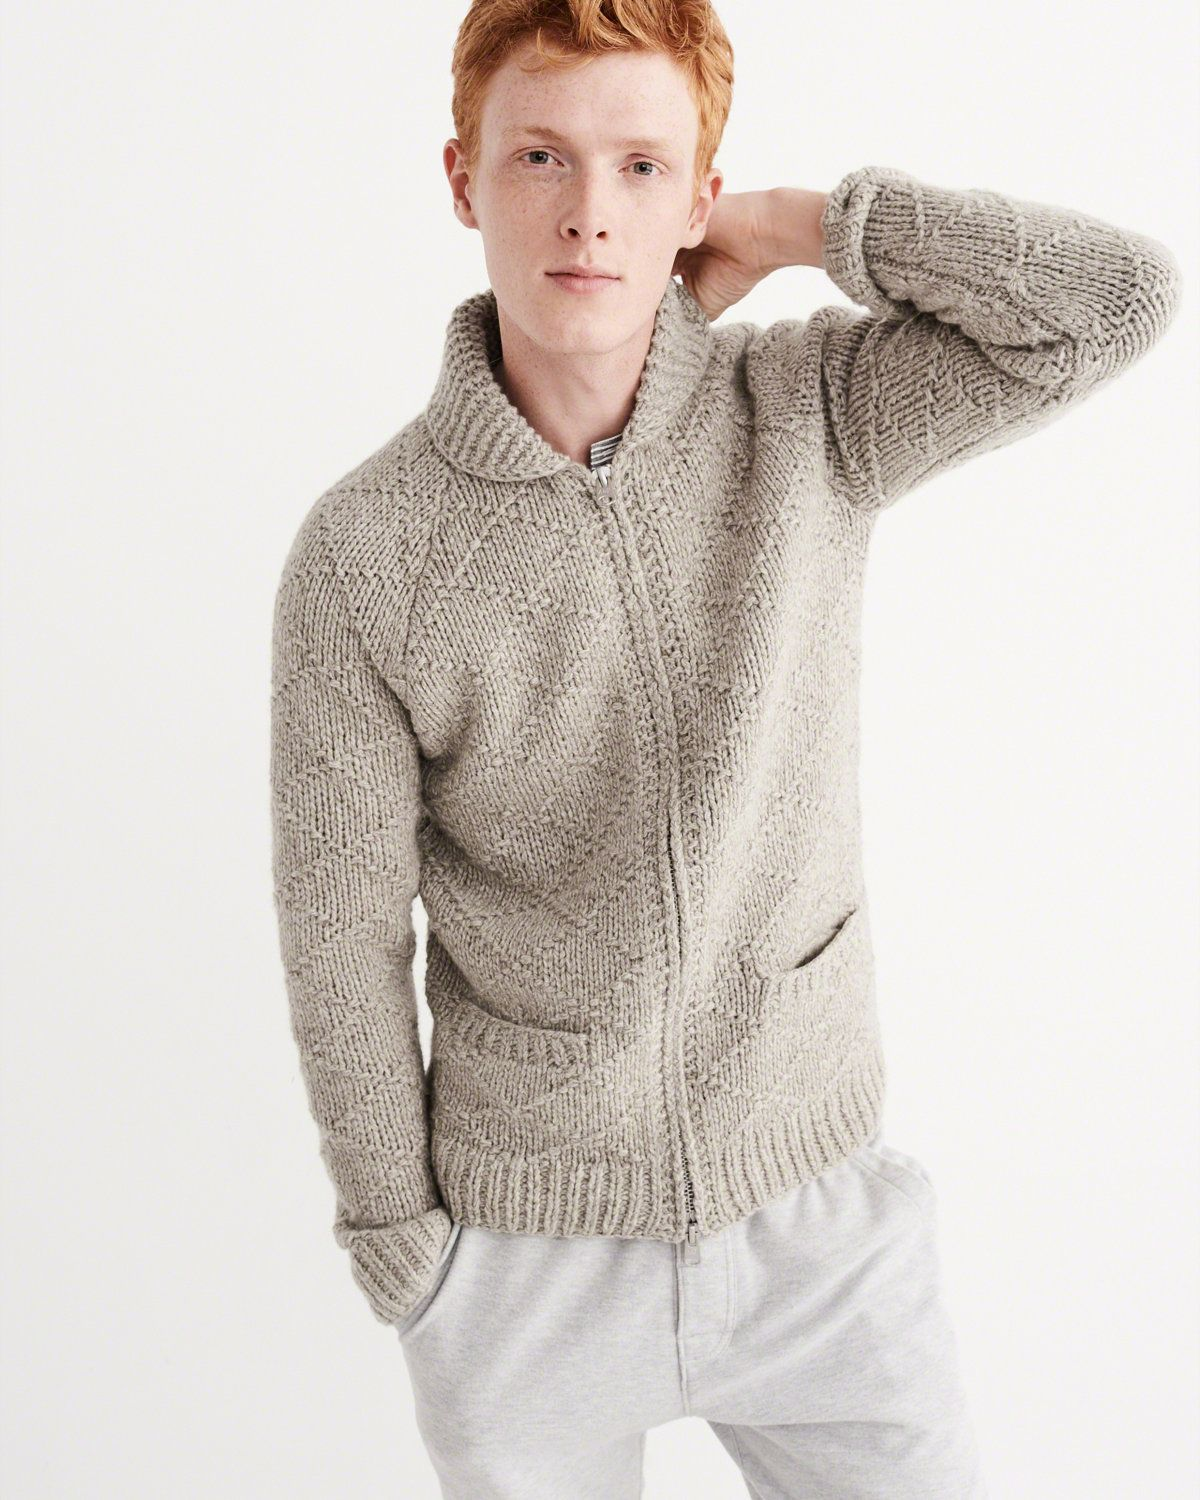 Mens Spring Collection   Abercrombie & Fitch   Caballero   Pinterest ...